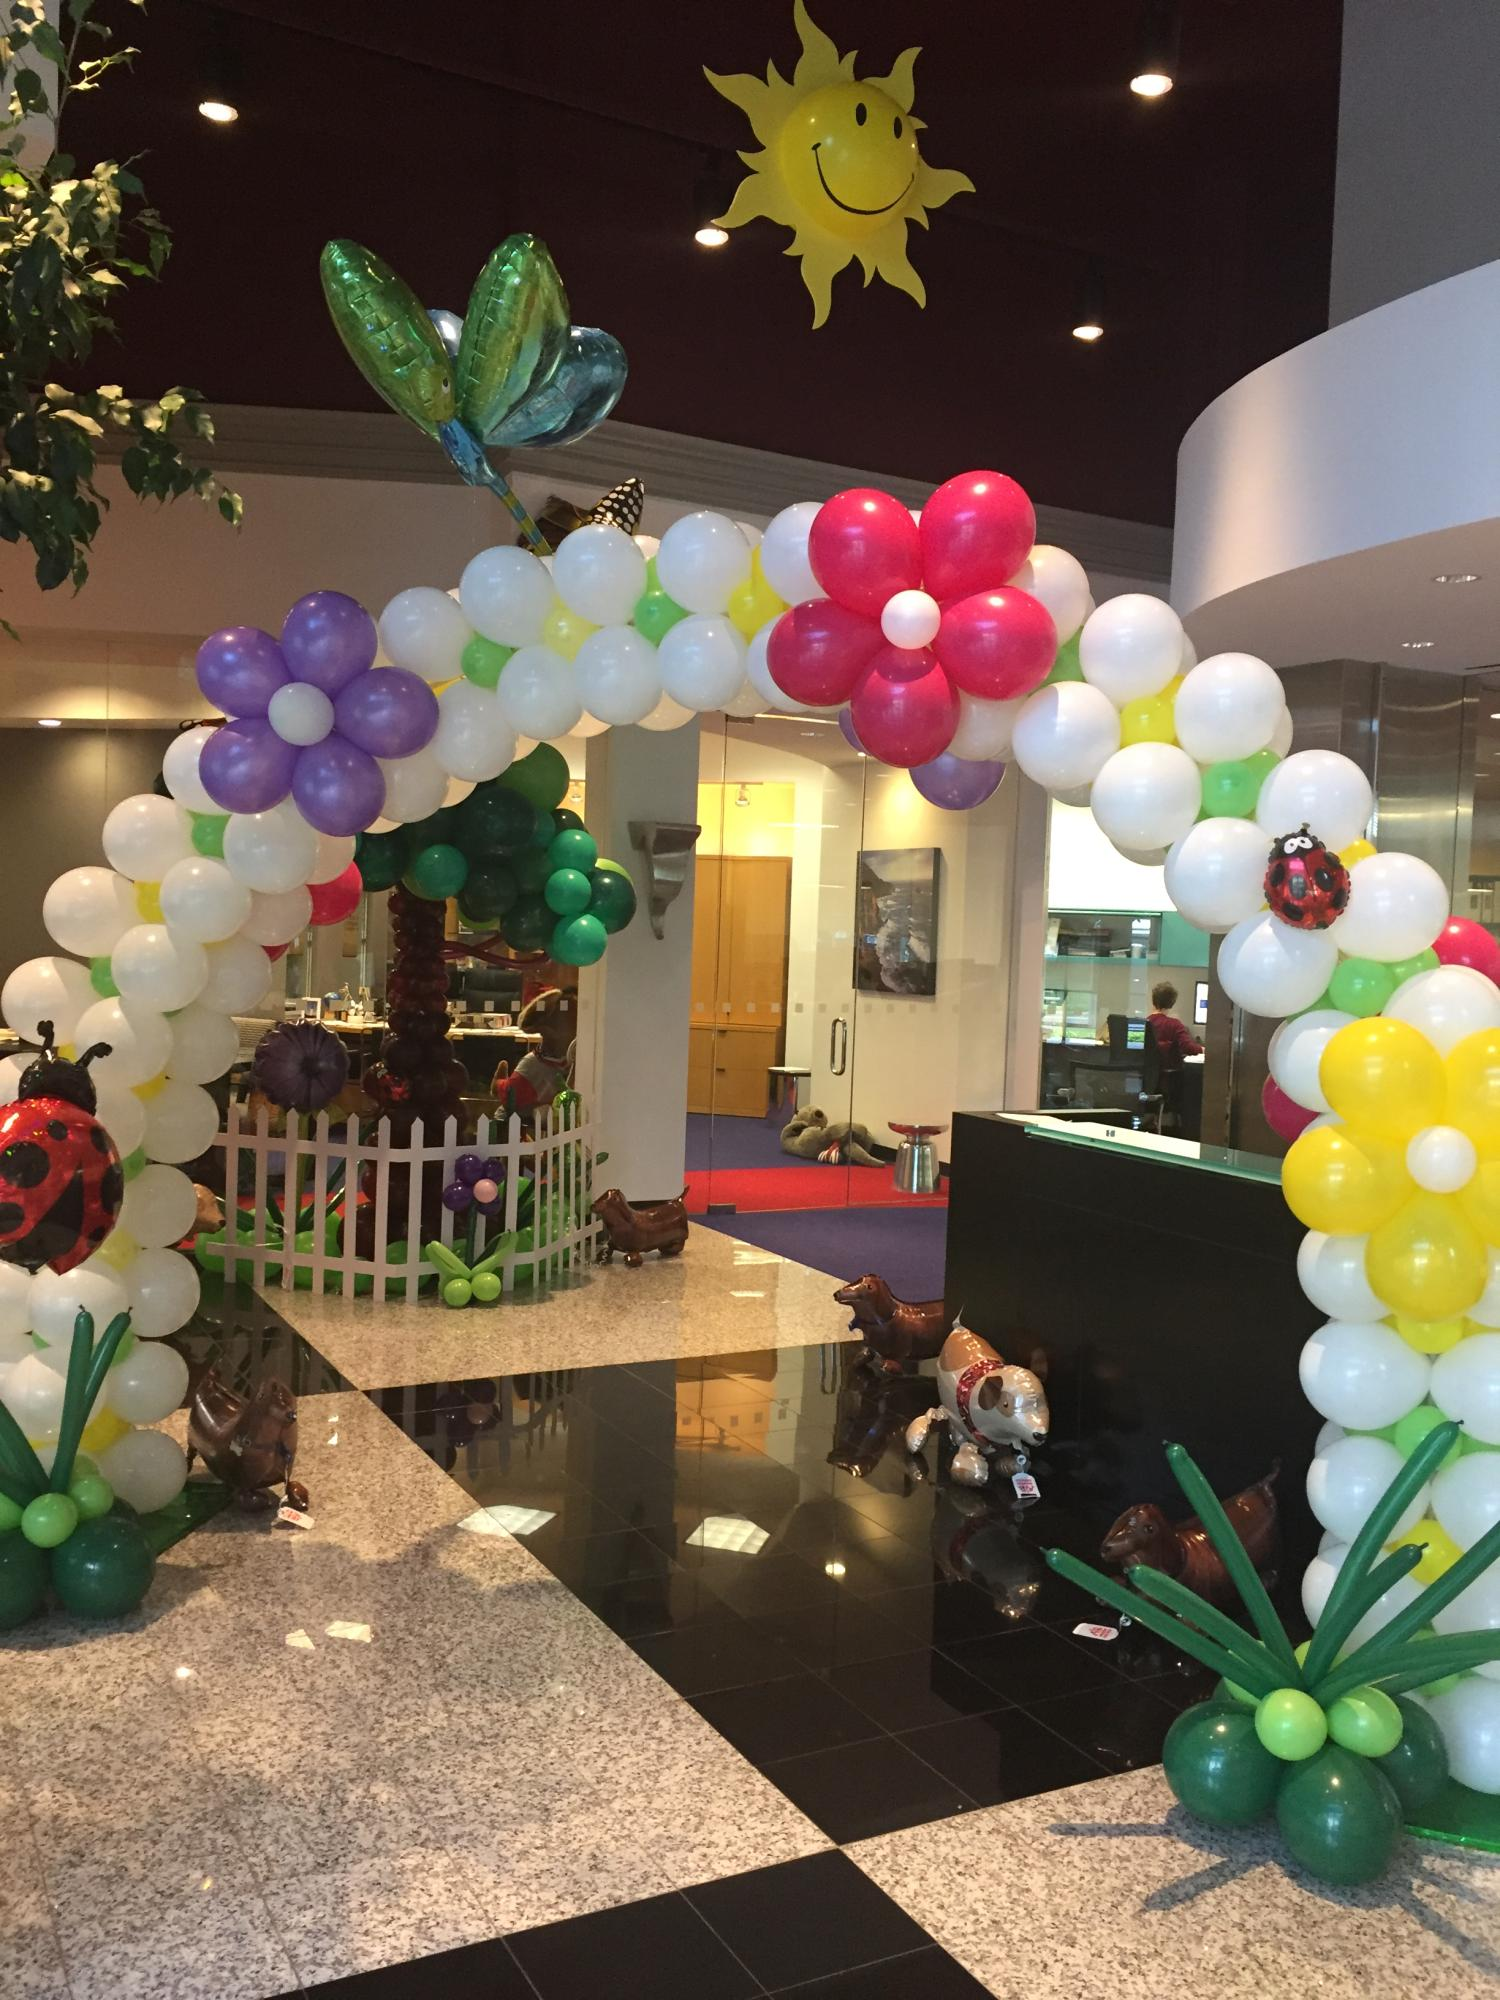 Spring fling garden party balloons